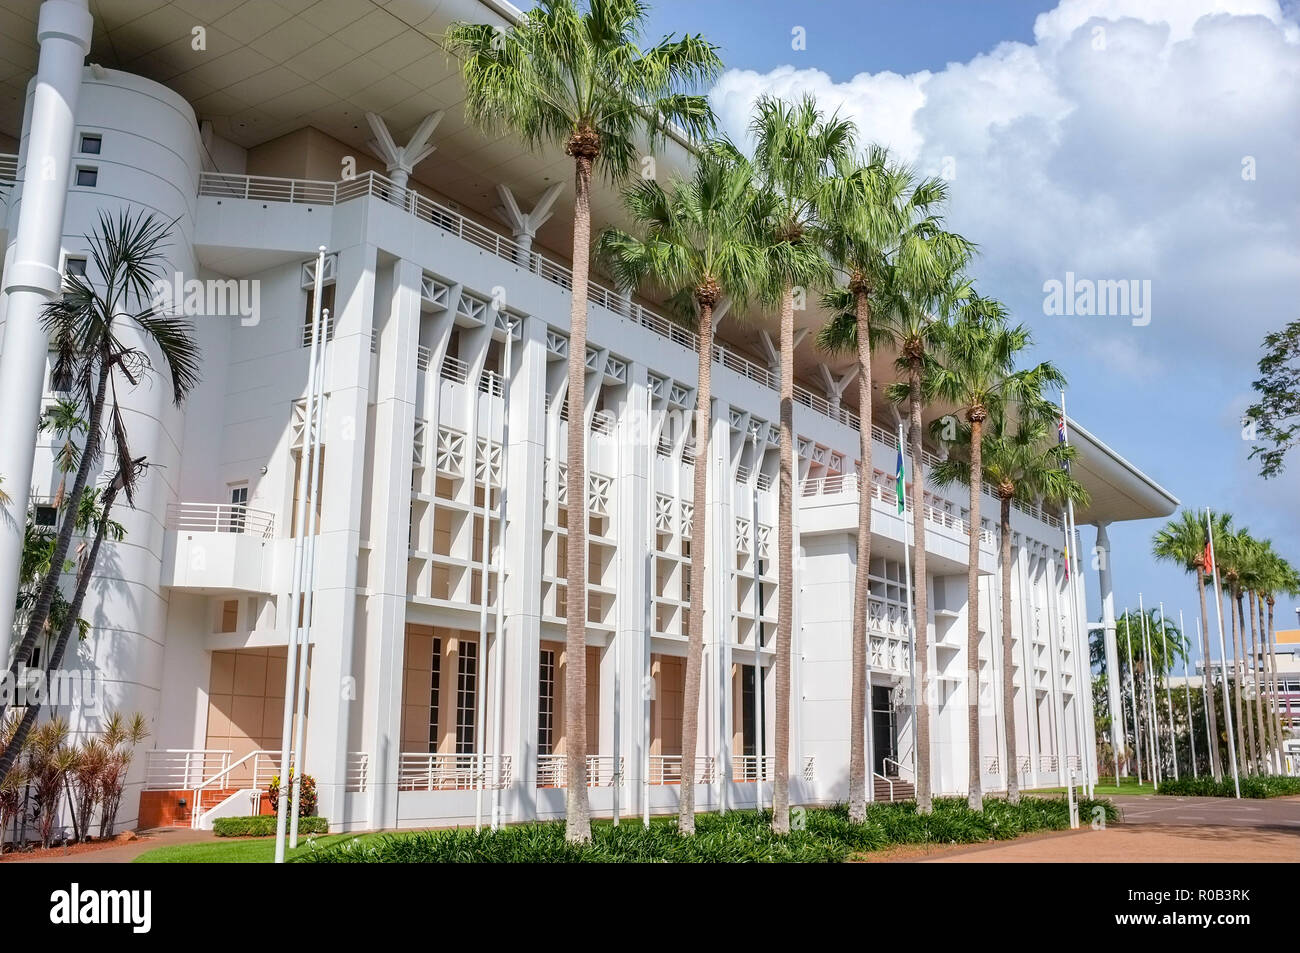 parliament-house-of-the-northern-territory-of-australia-in-darwin-city-nt-australia-R0B3RK.jpg